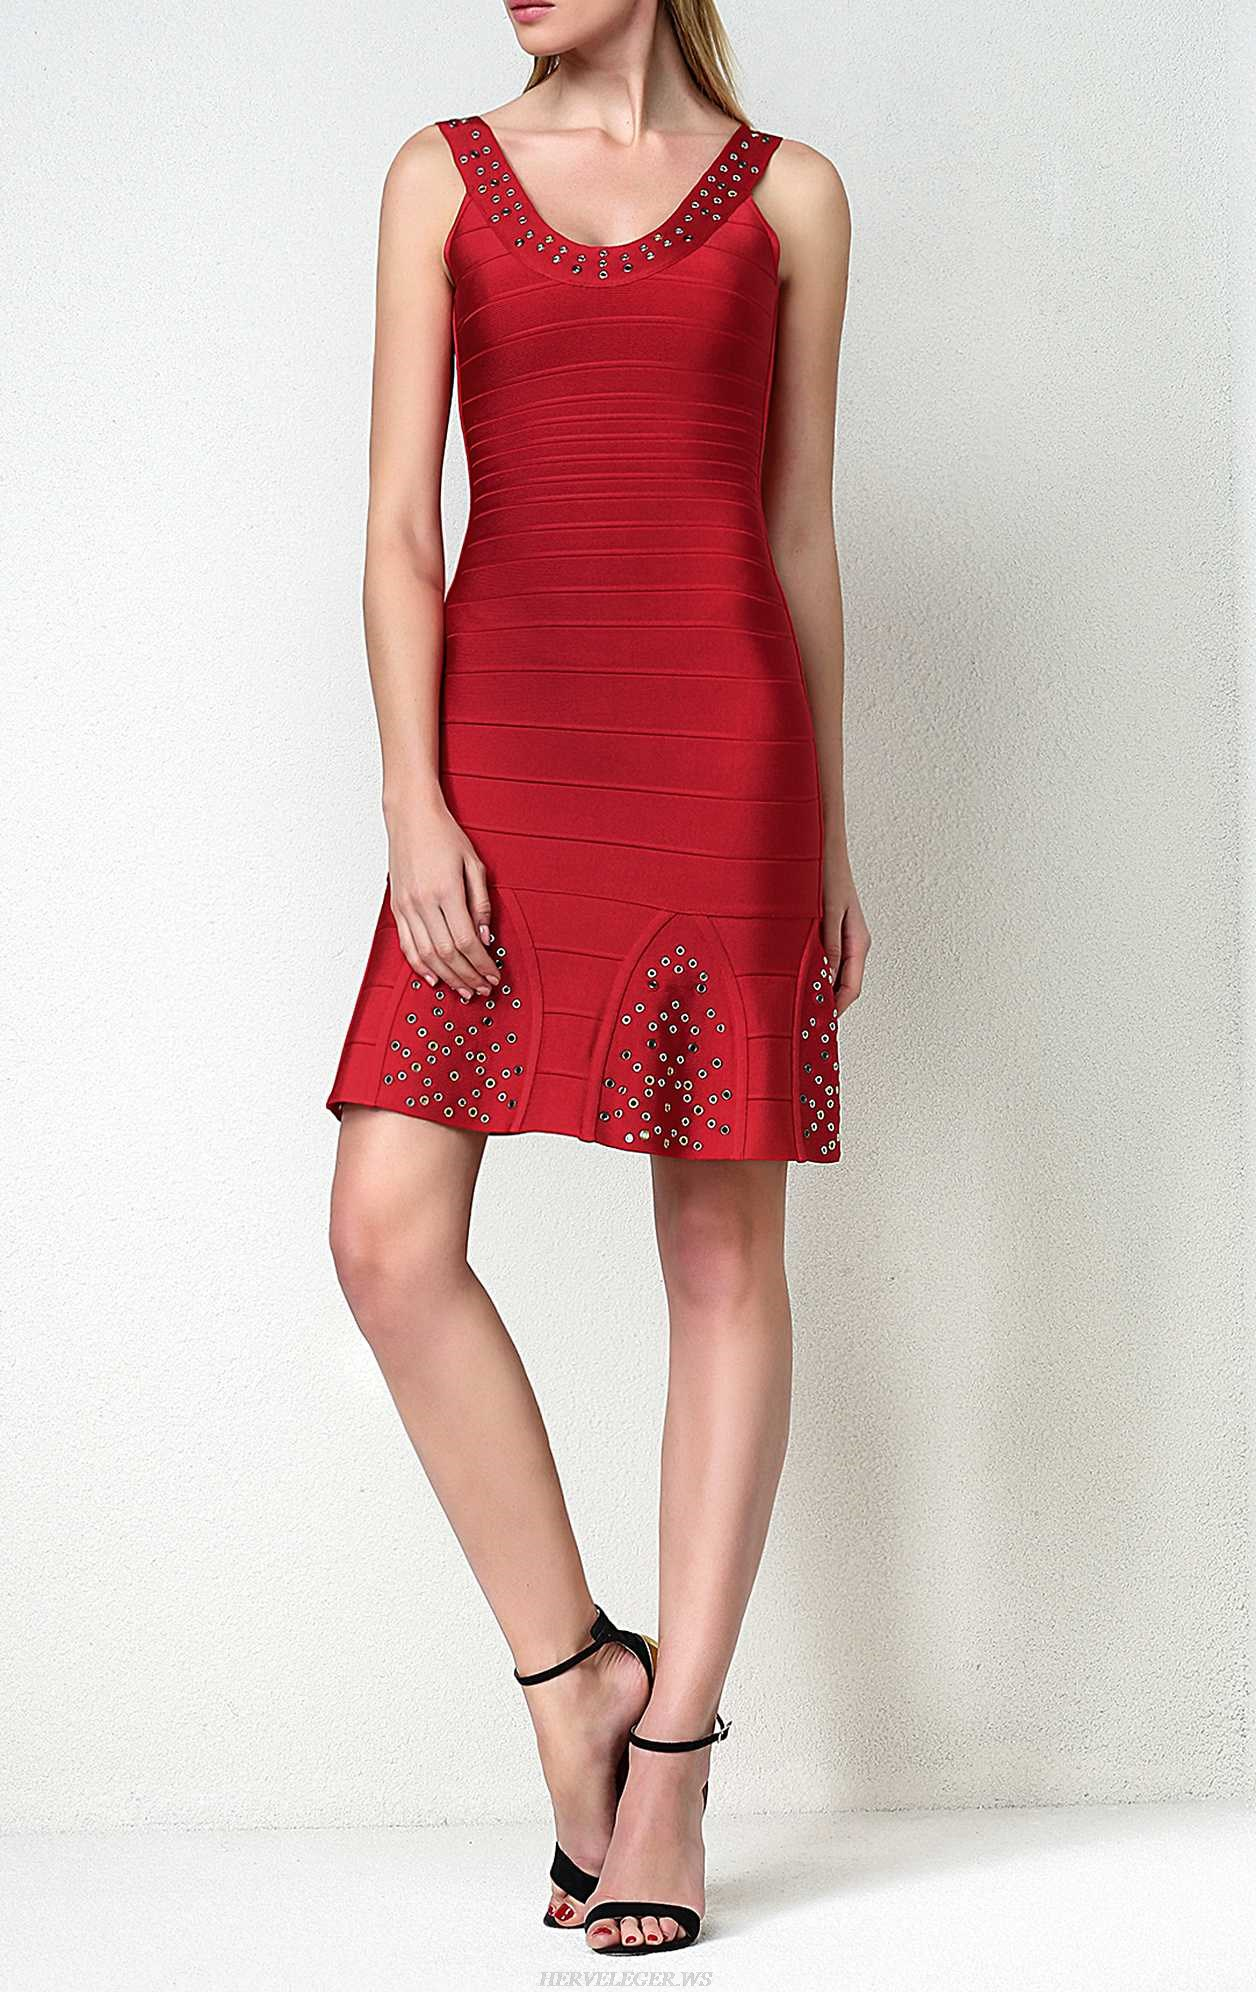 Herve Leger Blakely Multi Eyelet Dress